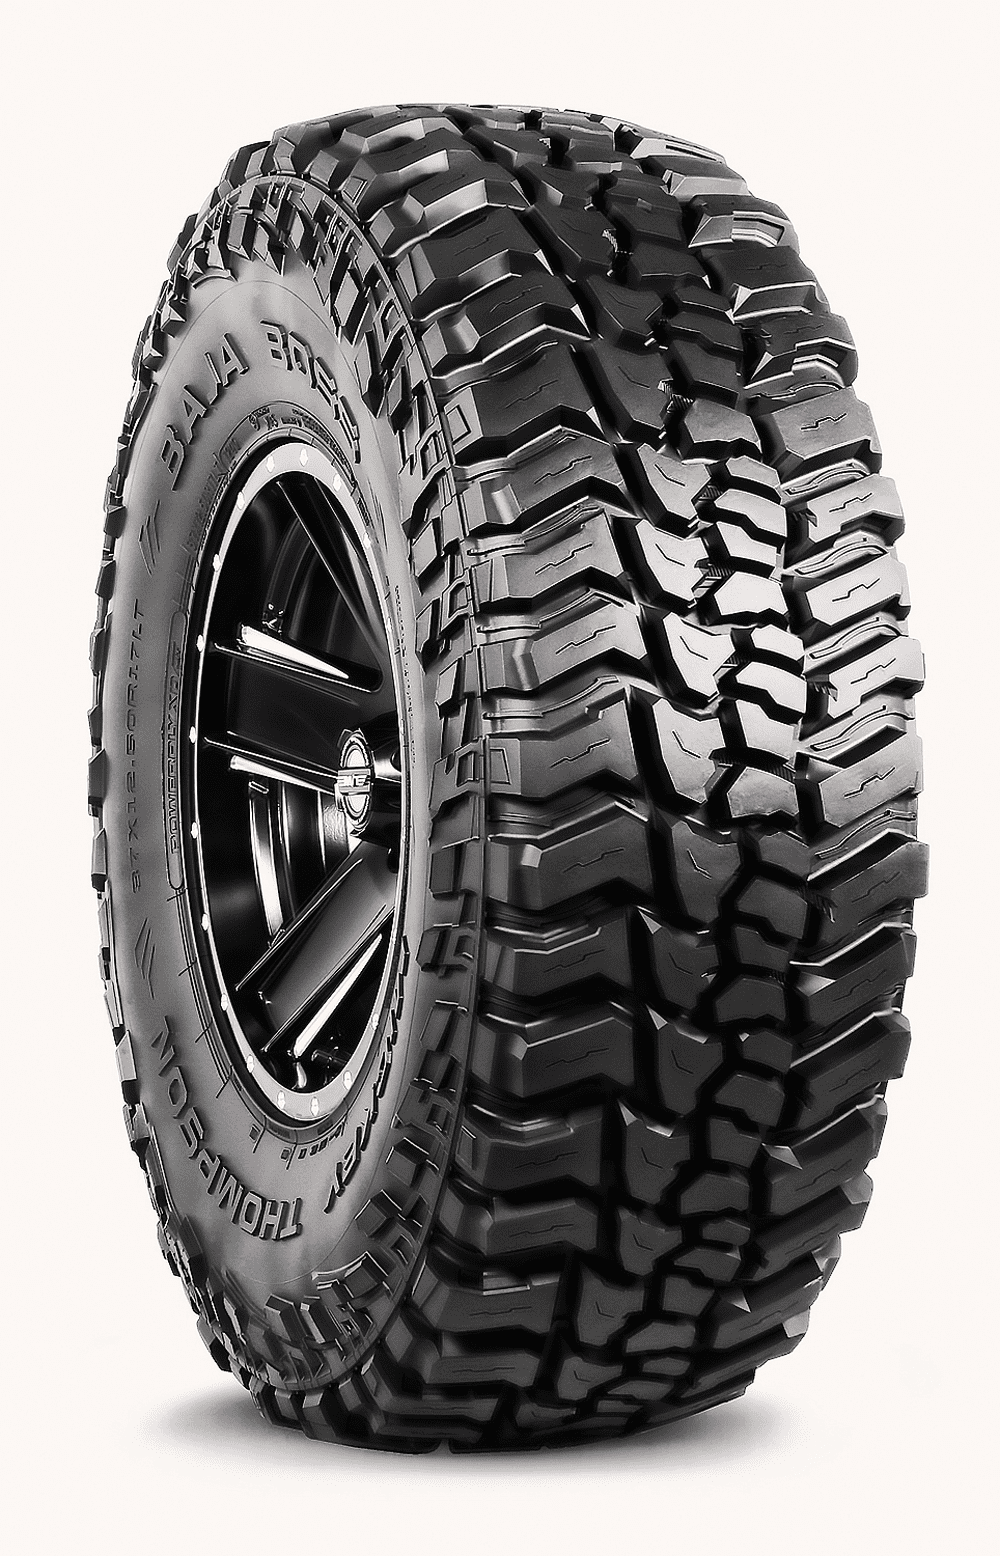 Bridgestone Dueller AT/2 Revo 3 On- and Off-Road Tire